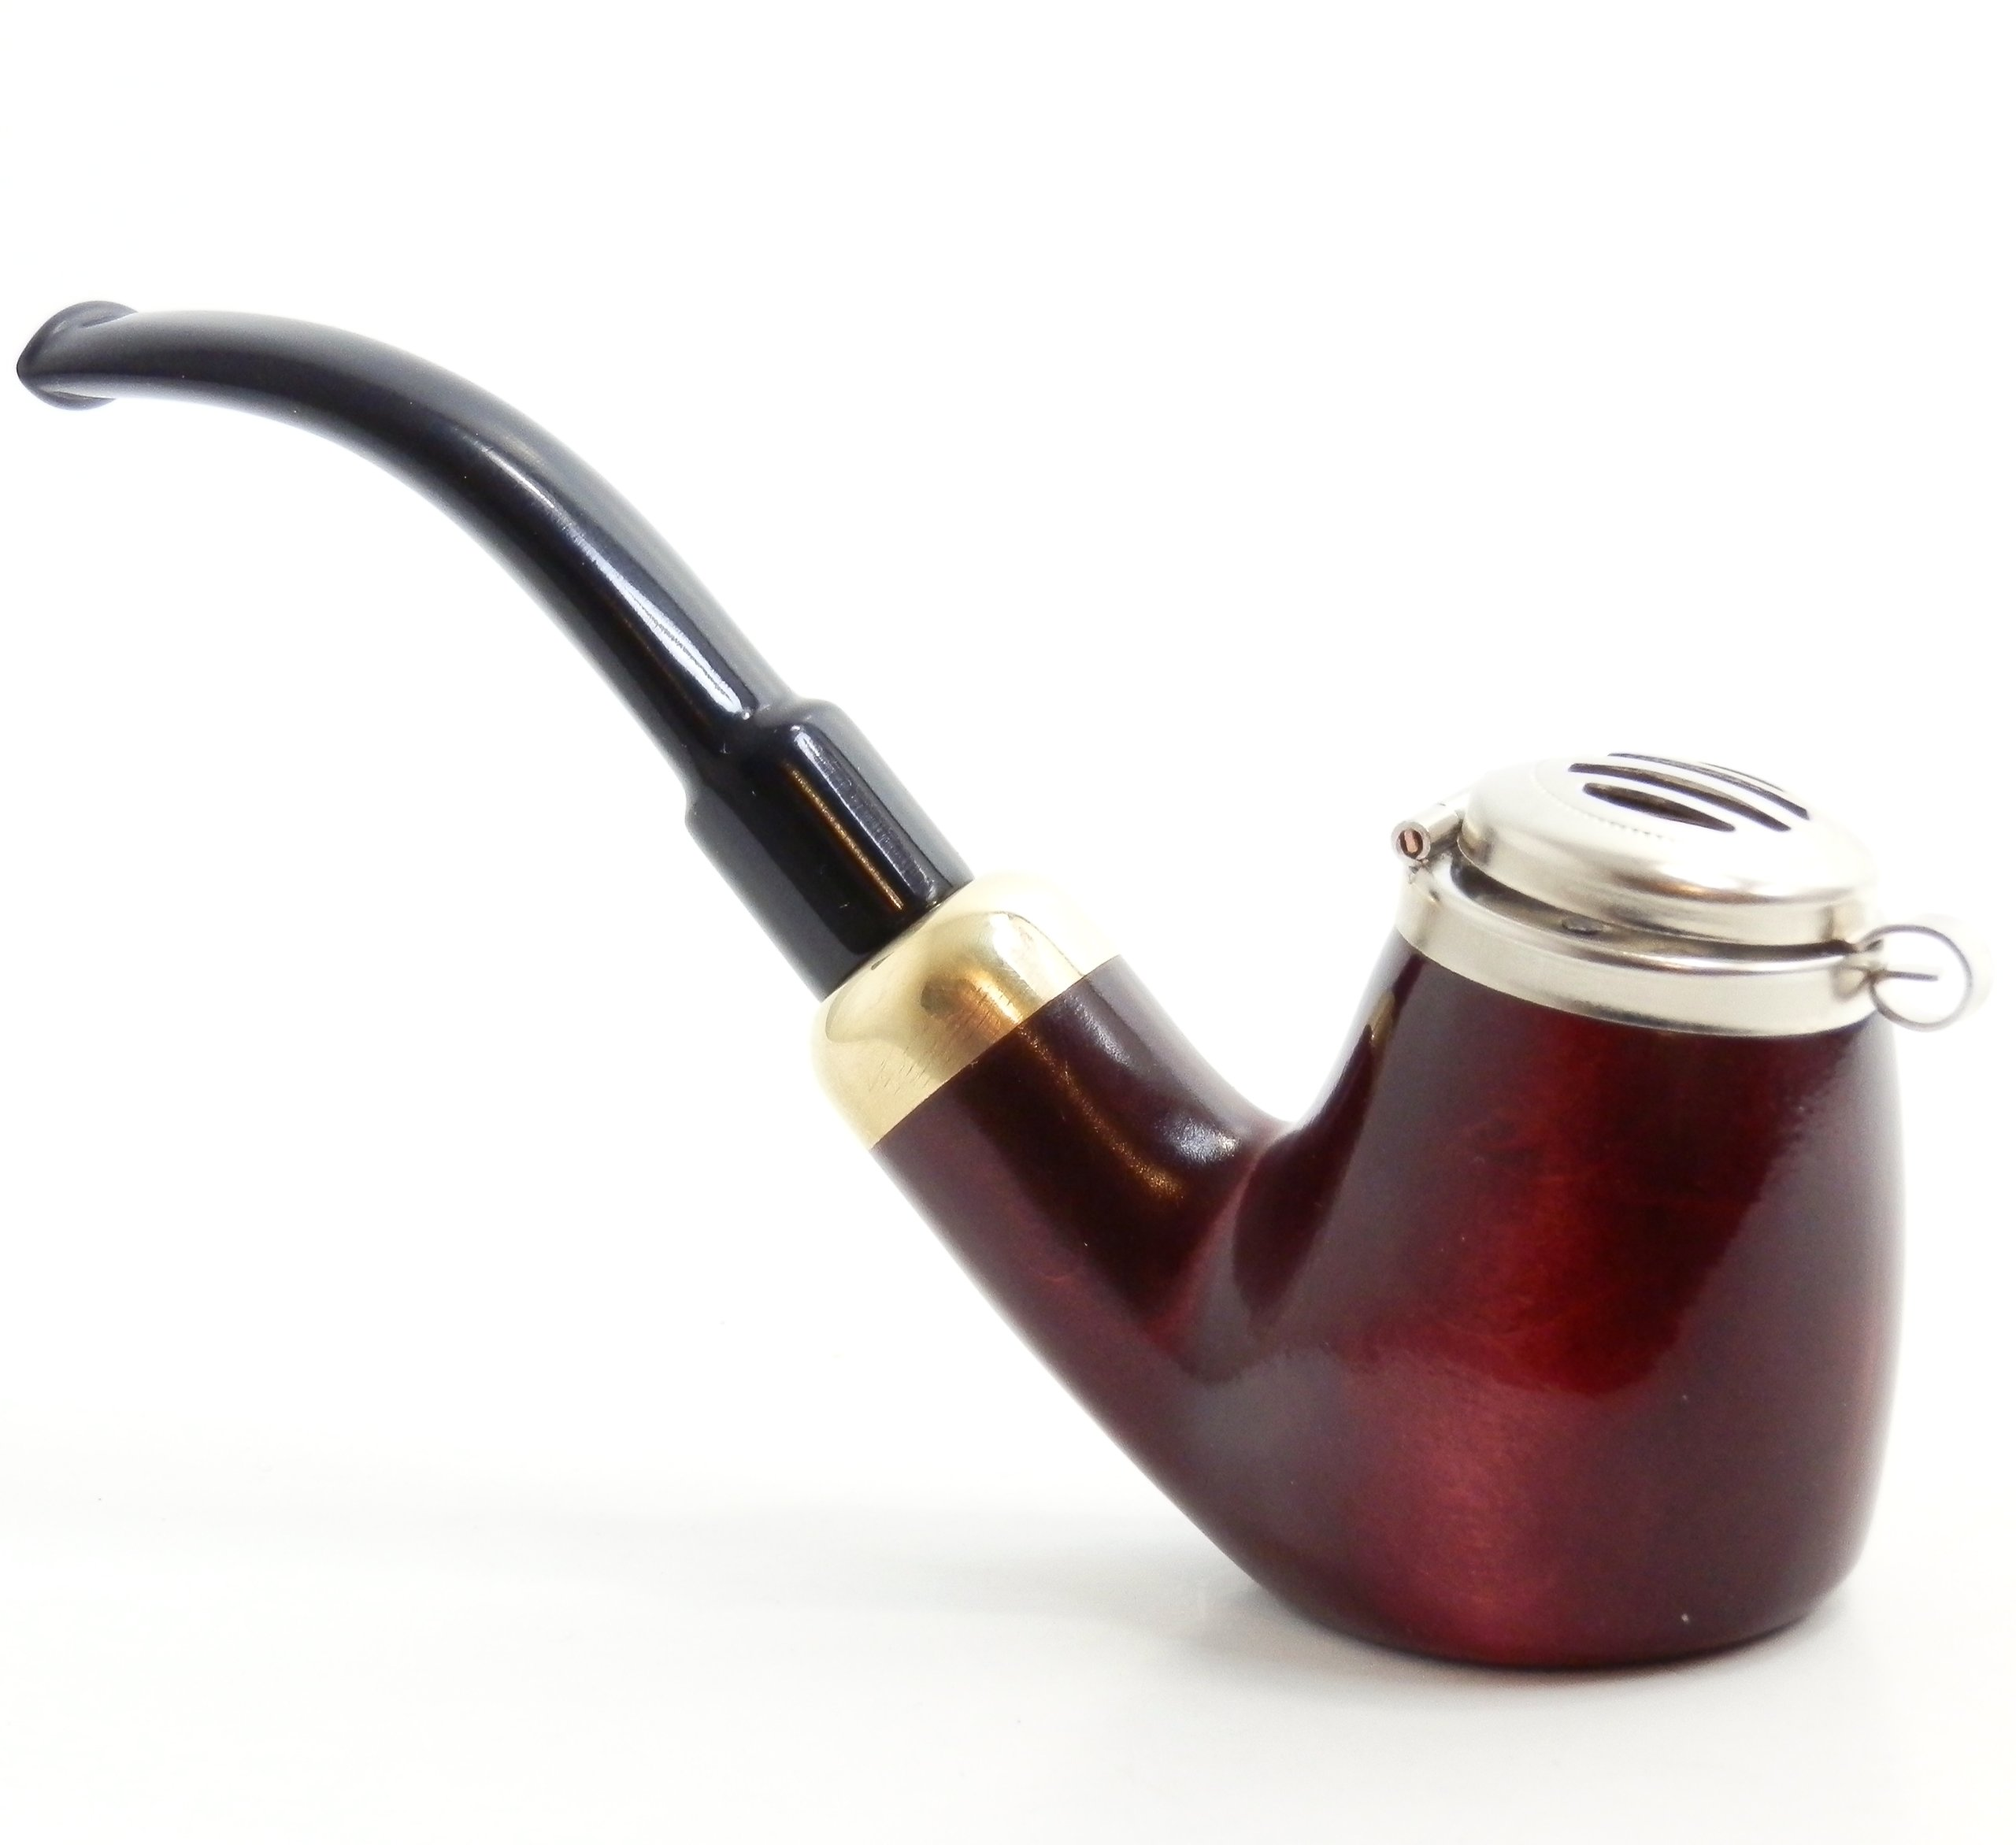 Mr. Brog Full Bent Smoking Tobacco Pipe - Model No 21 Old Army Mahogany  sc 1 st  Amazon.com & Amazon.com: Meerschaum Pipe - CALABASH - Sherlock Holmes Pipe - Hand ...